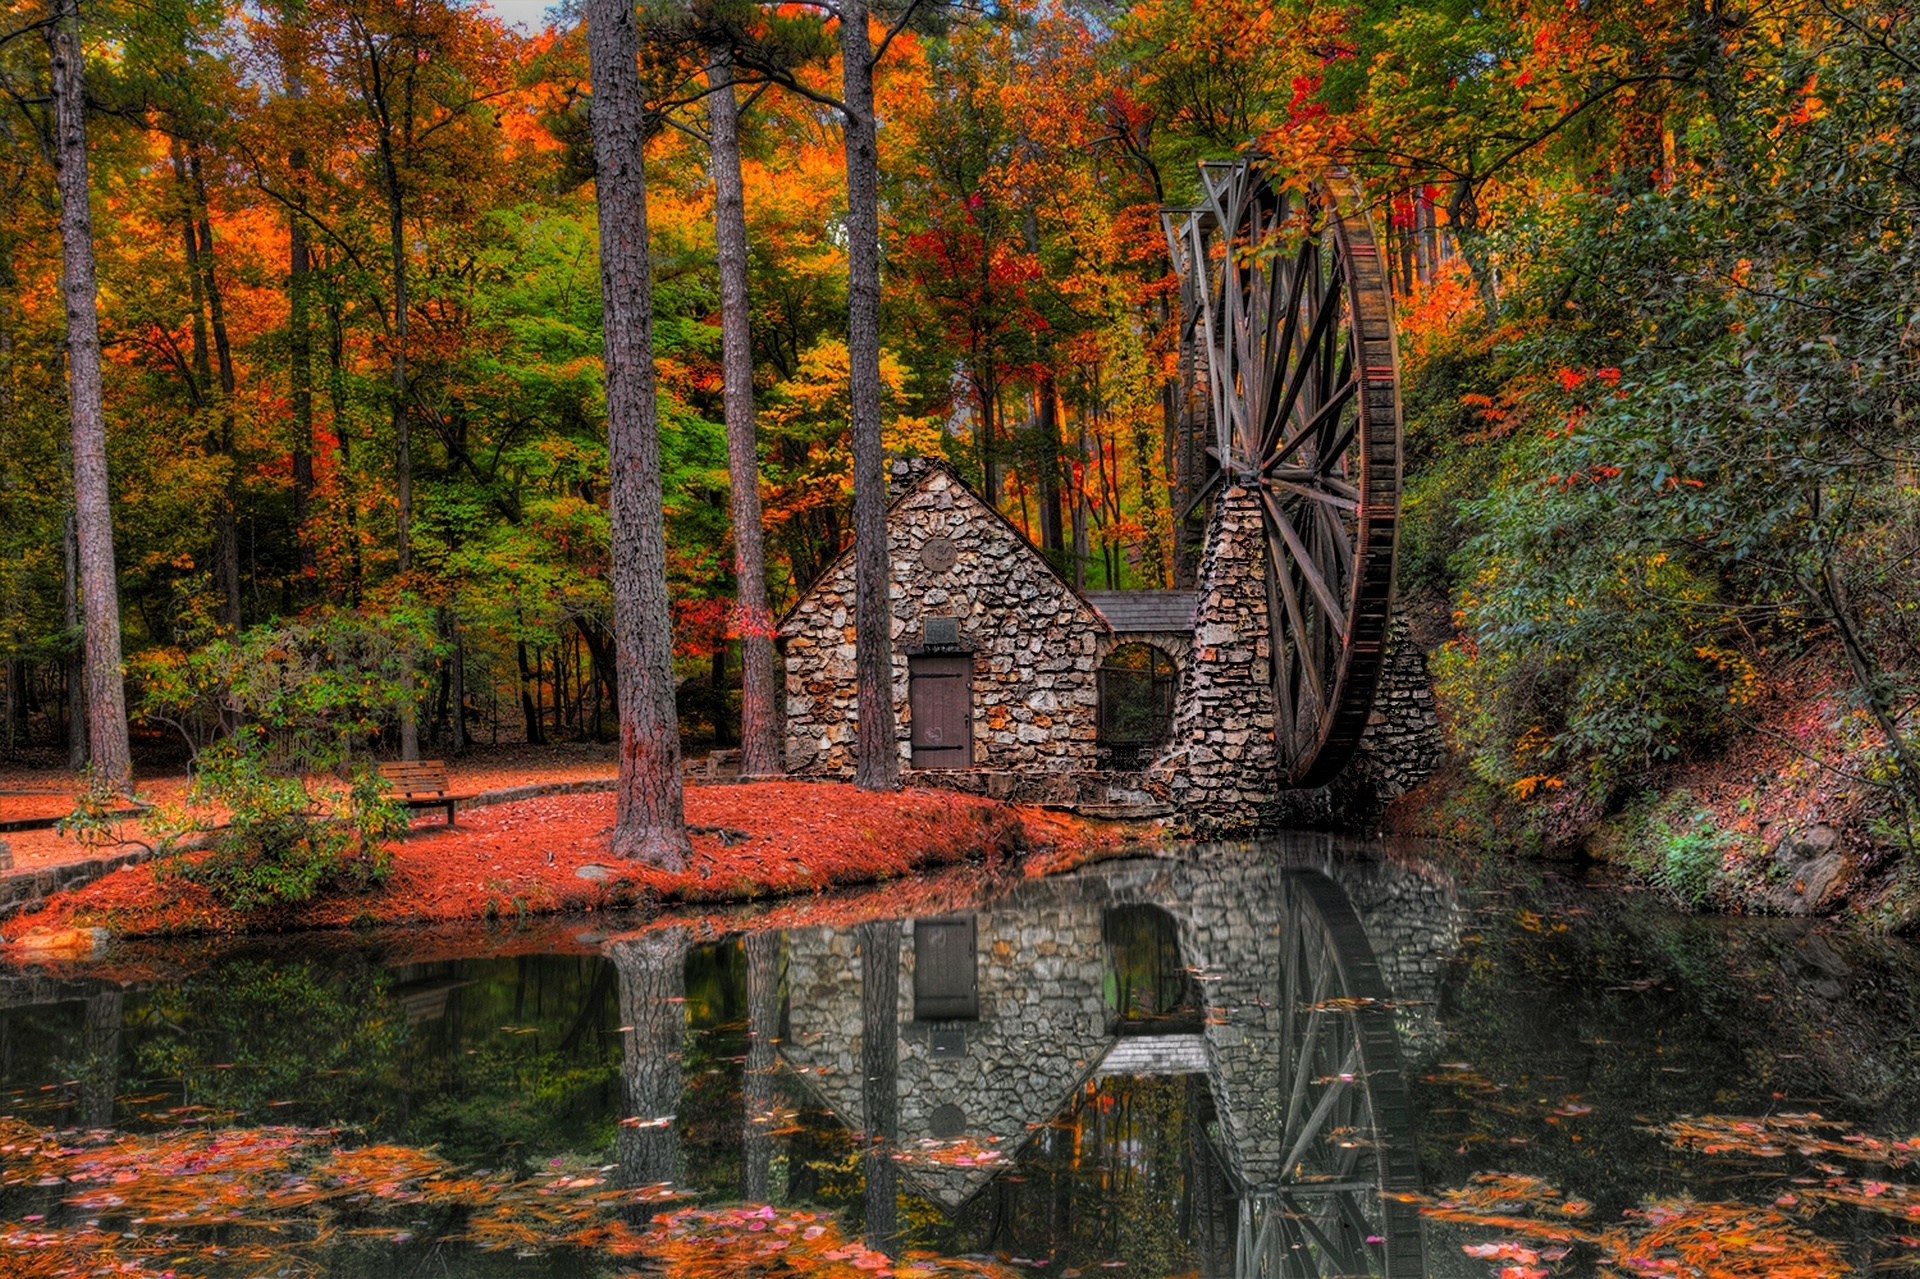 Vermont Fall Foliage Wallpaper Autumn Trees Mill Walk Park Alley Water Mill Forest Leaves